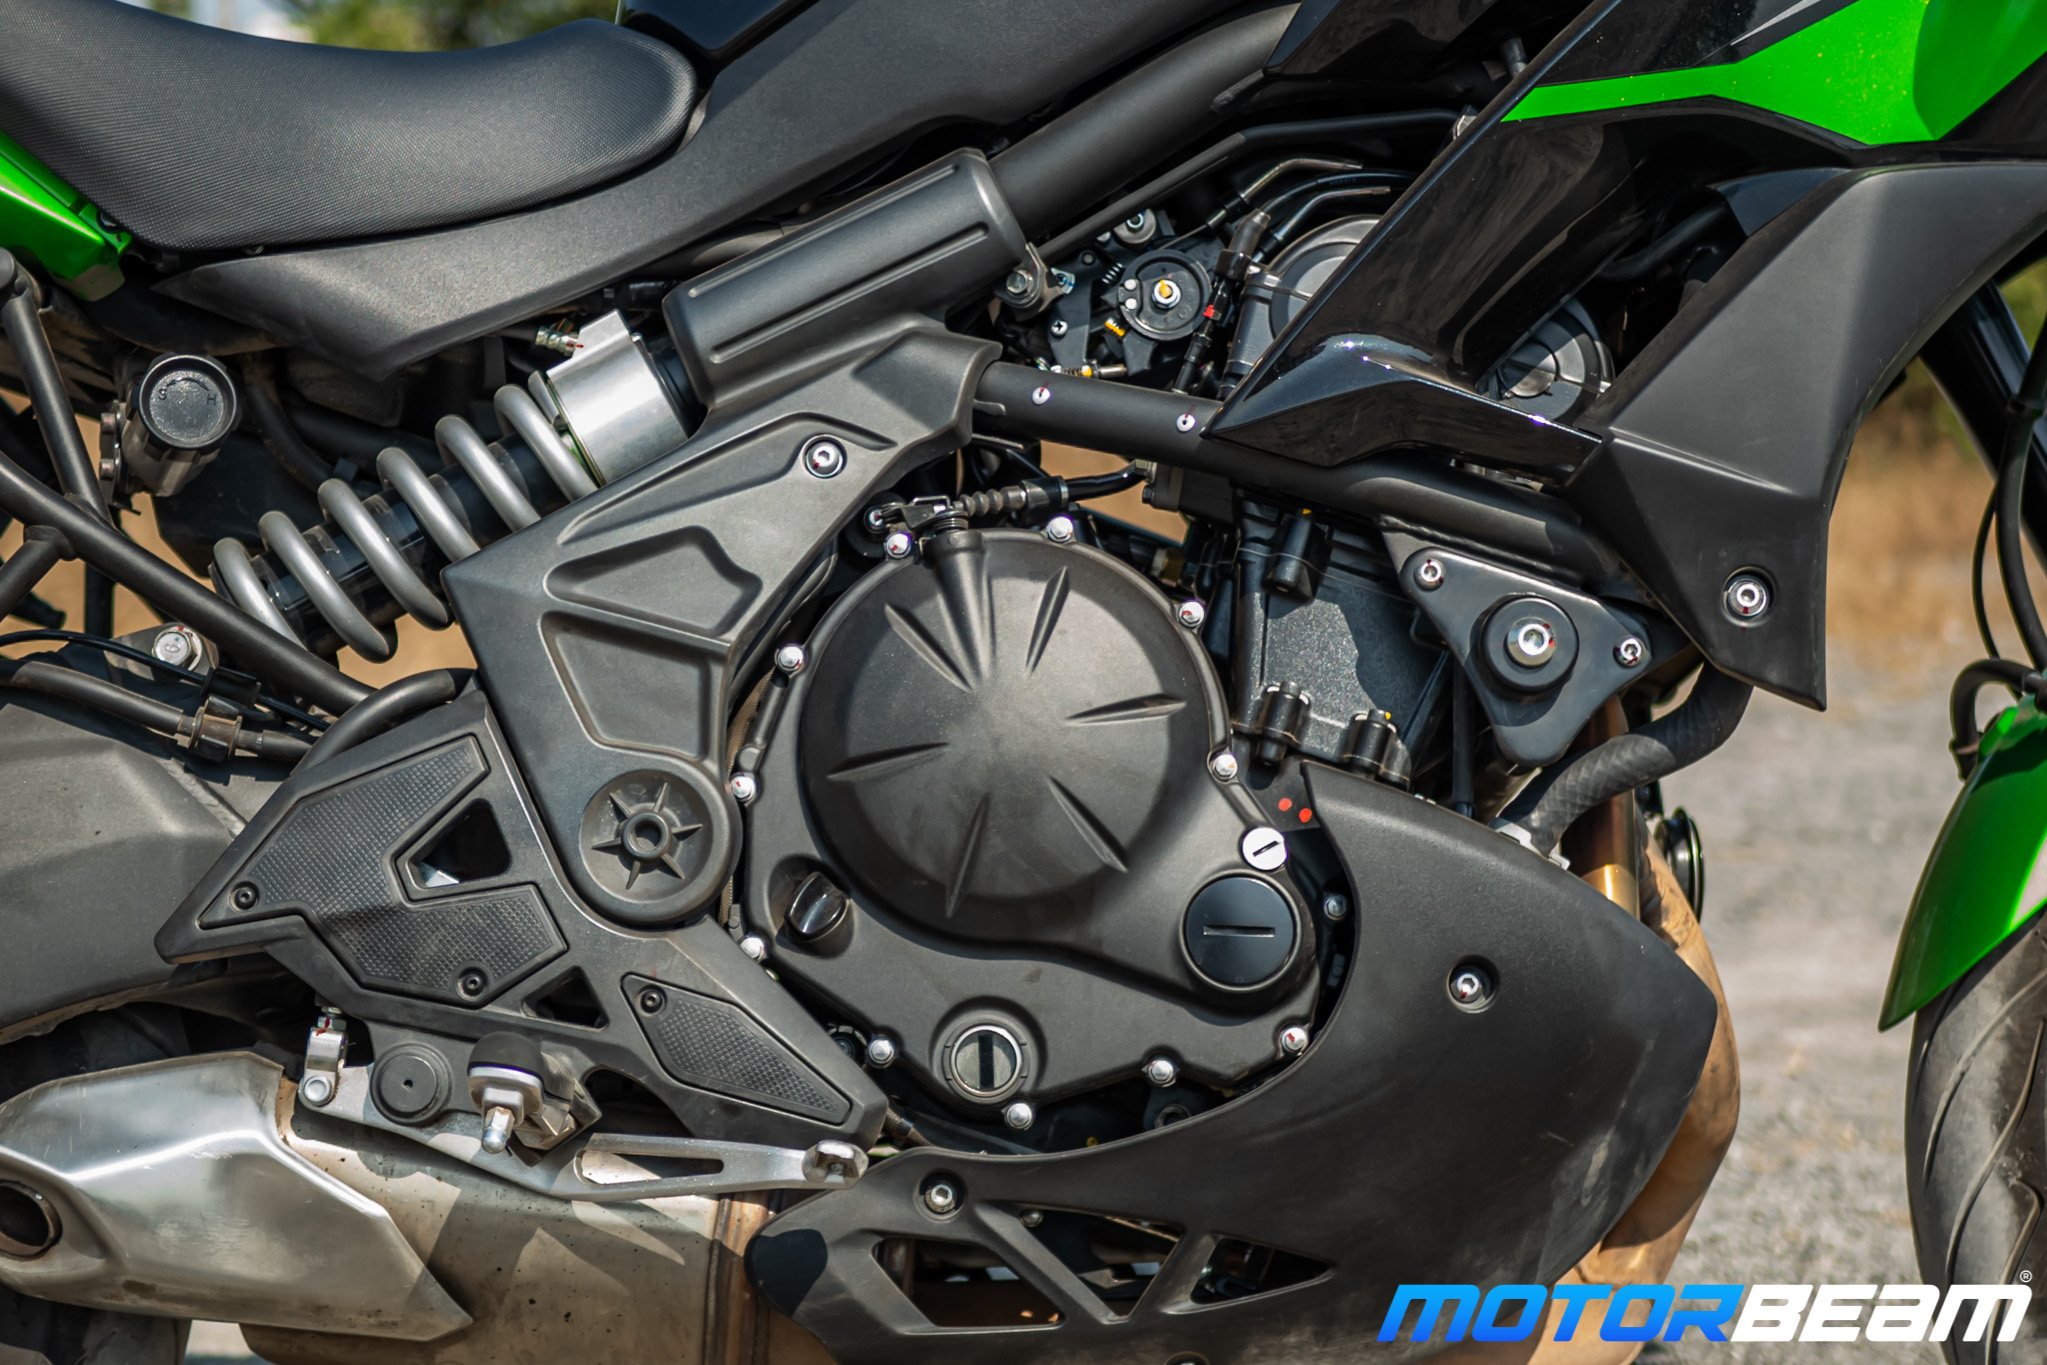 2021 Kawasaki Versys 650 Review 15